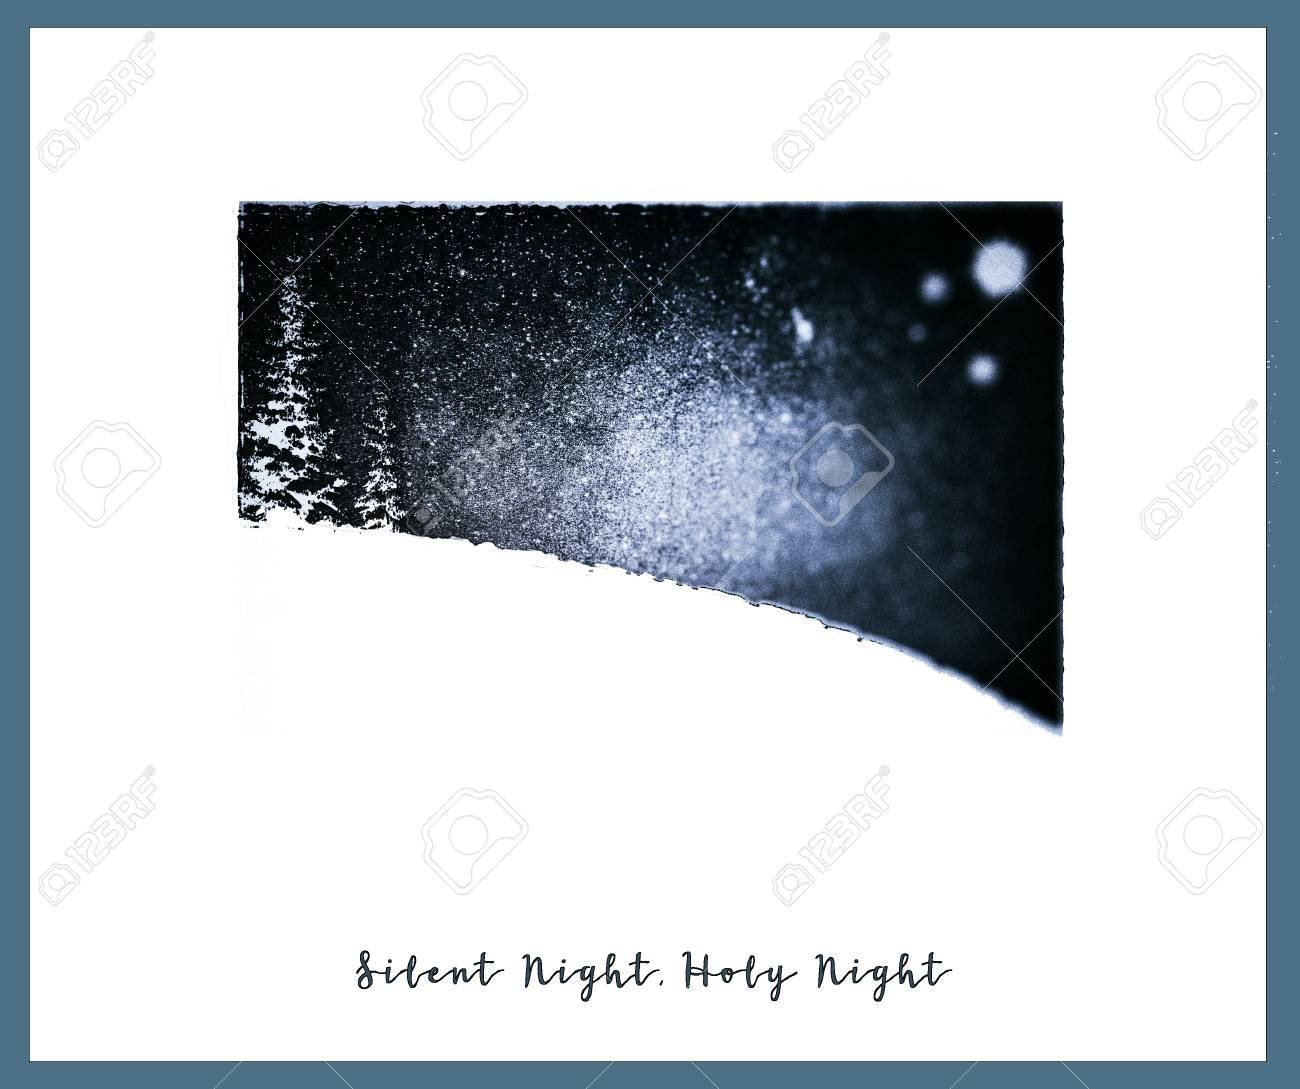 Simple Christmas Card With The Words Silent Night, Holy Night ...